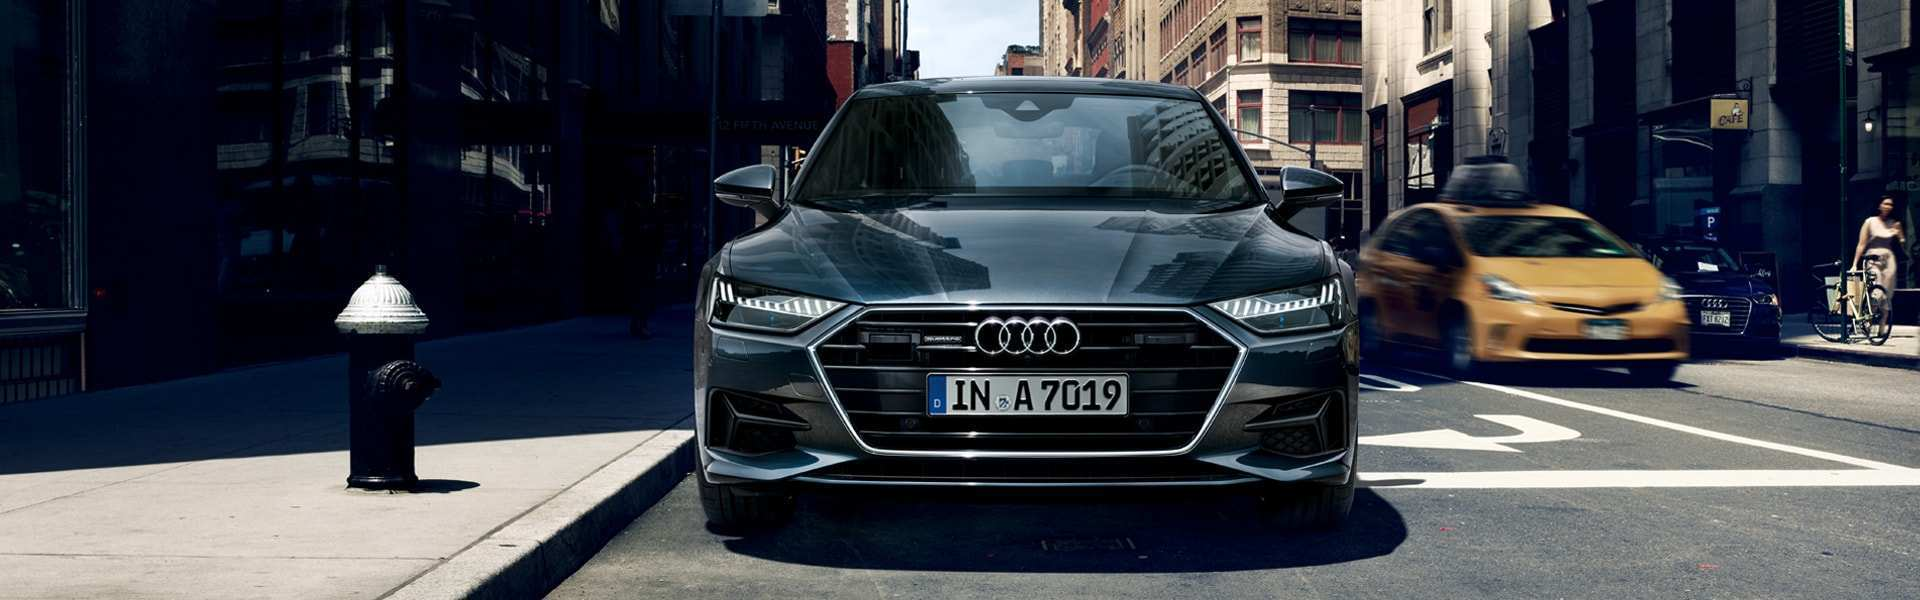 70 Great 2019 Audi Canada Photos for 2019 Audi Canada